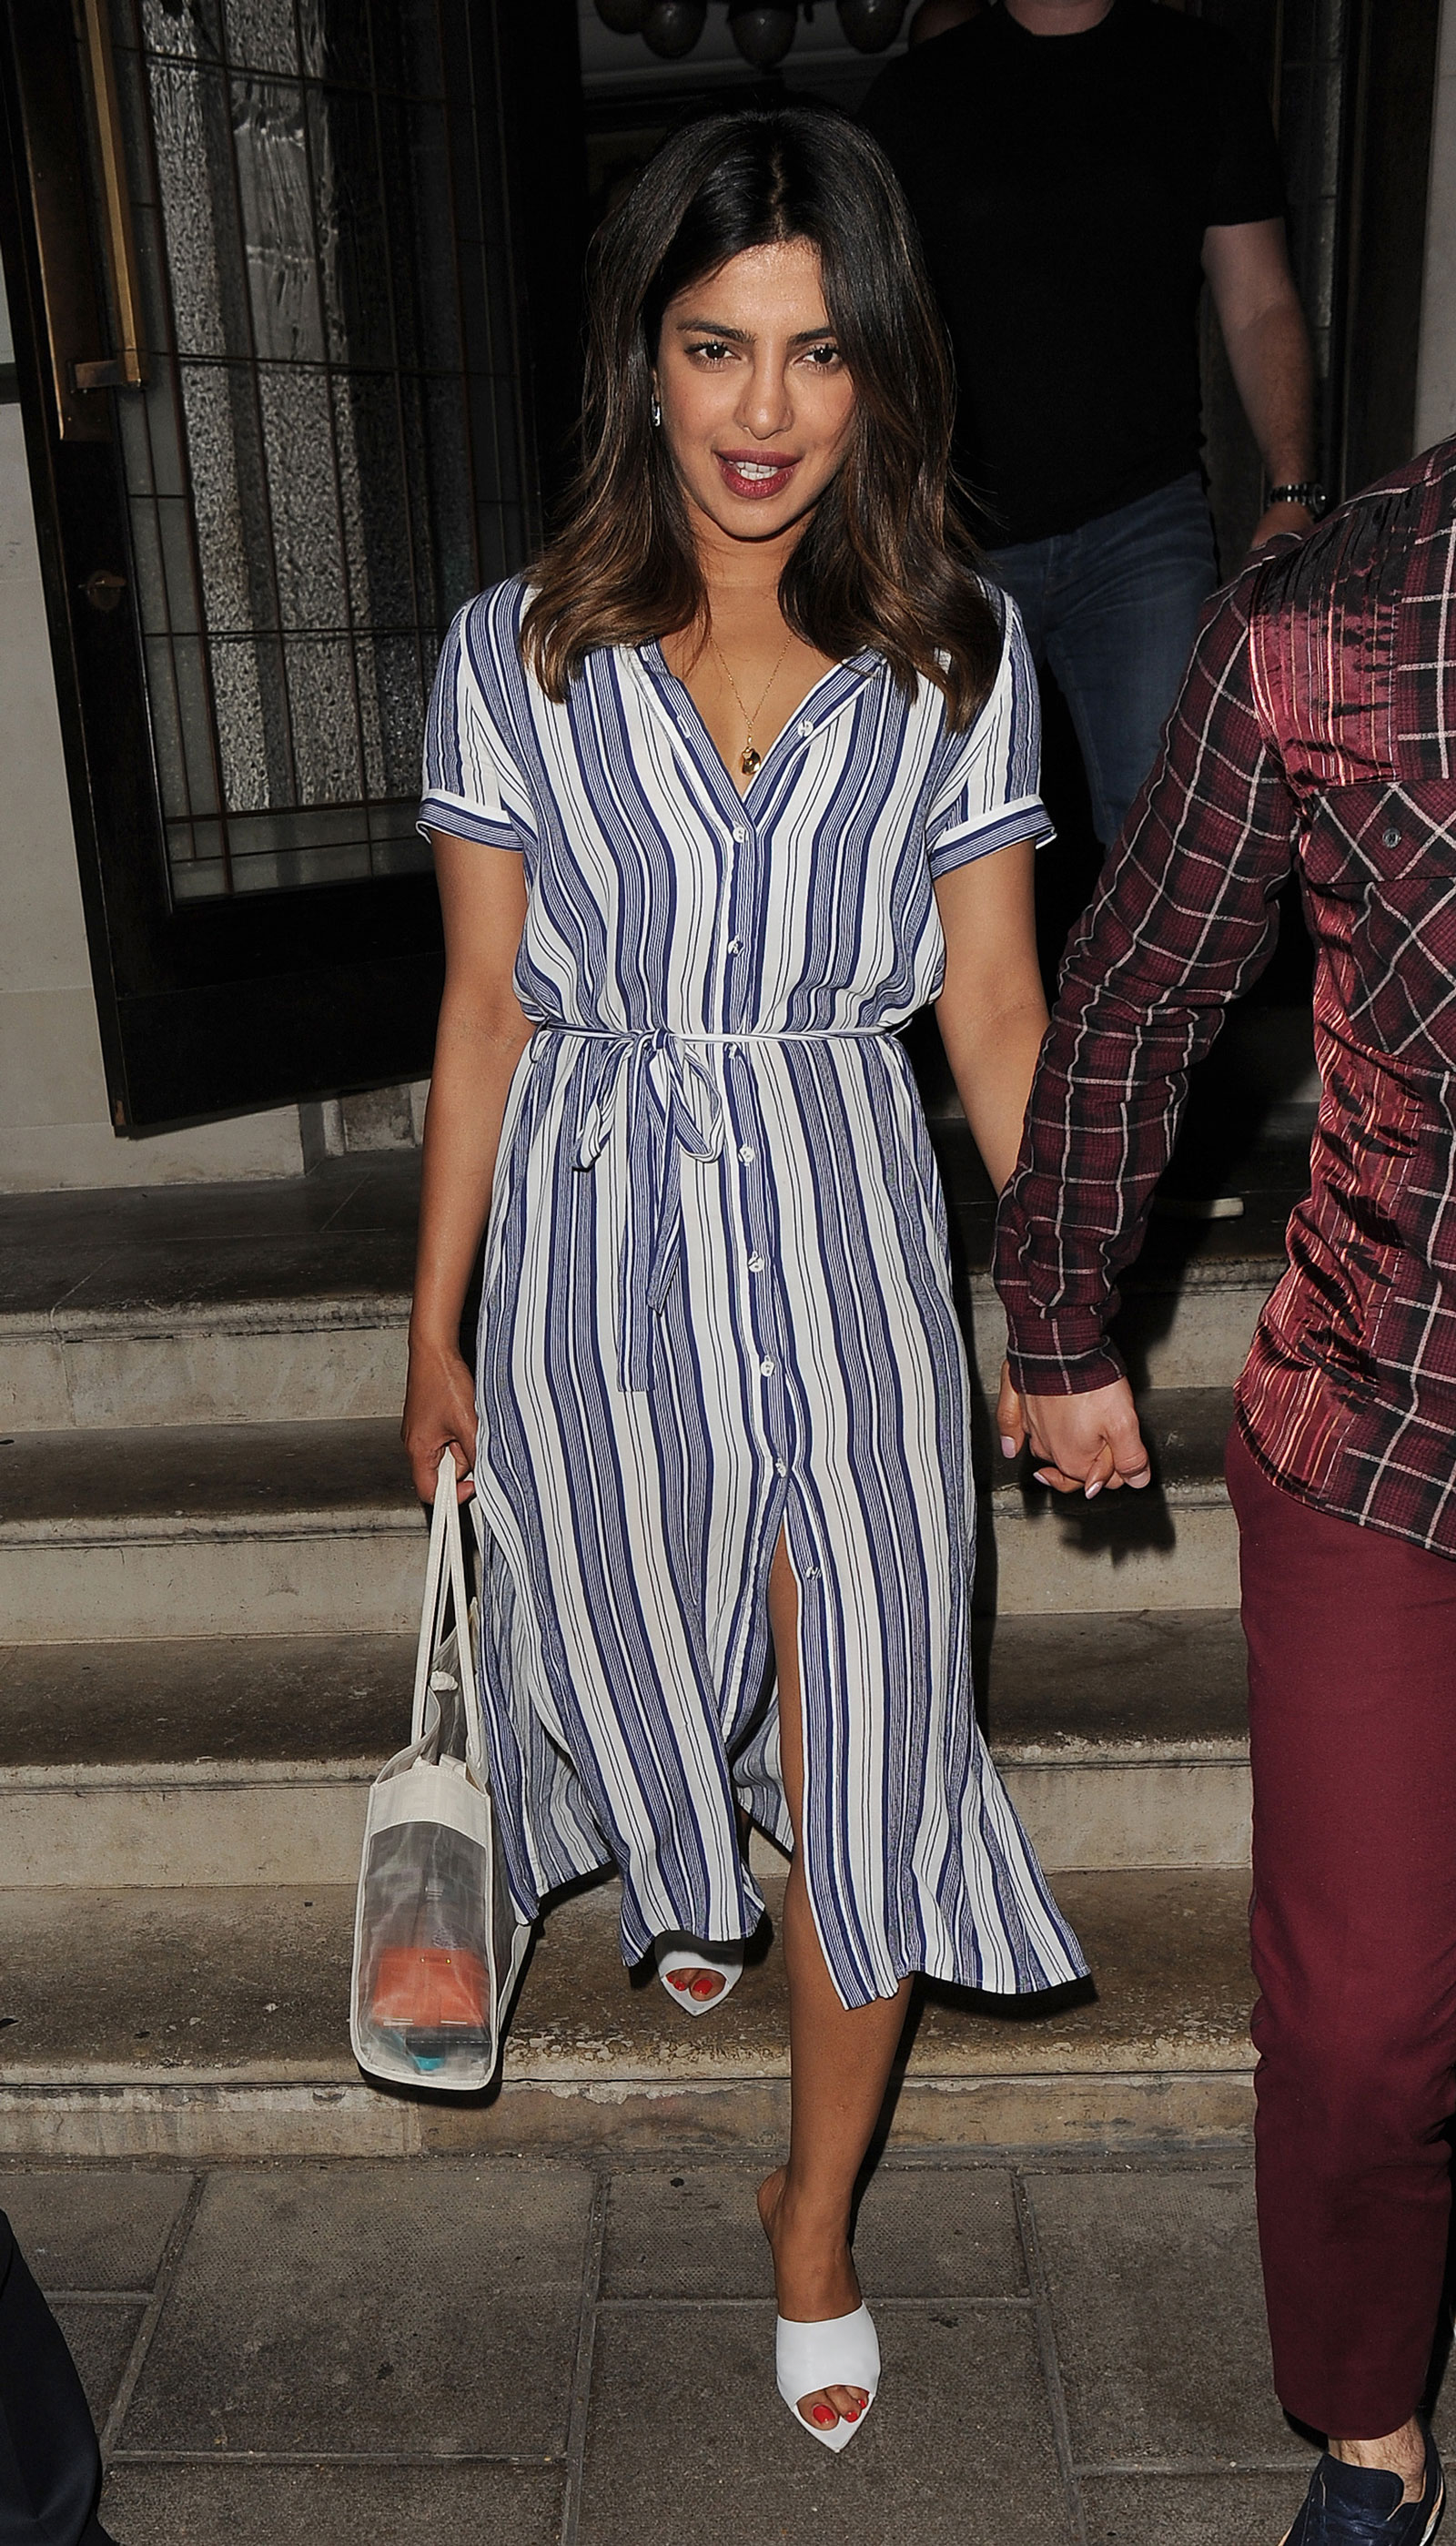 Priyanka Chopra Blue Striped Dress and White Mules